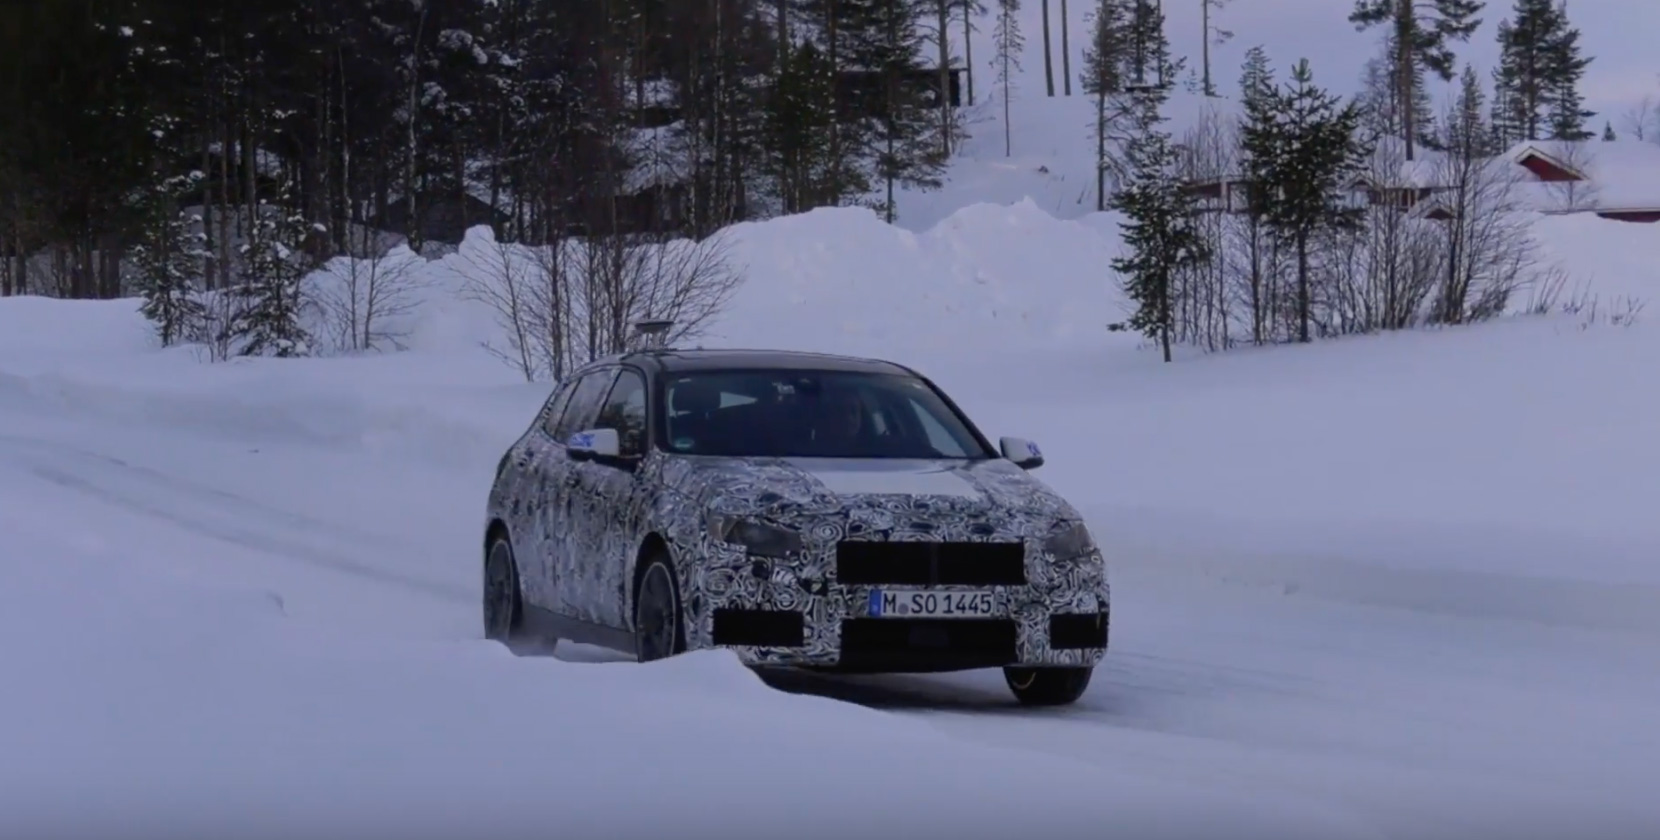 2019 BMW 1 Series snow